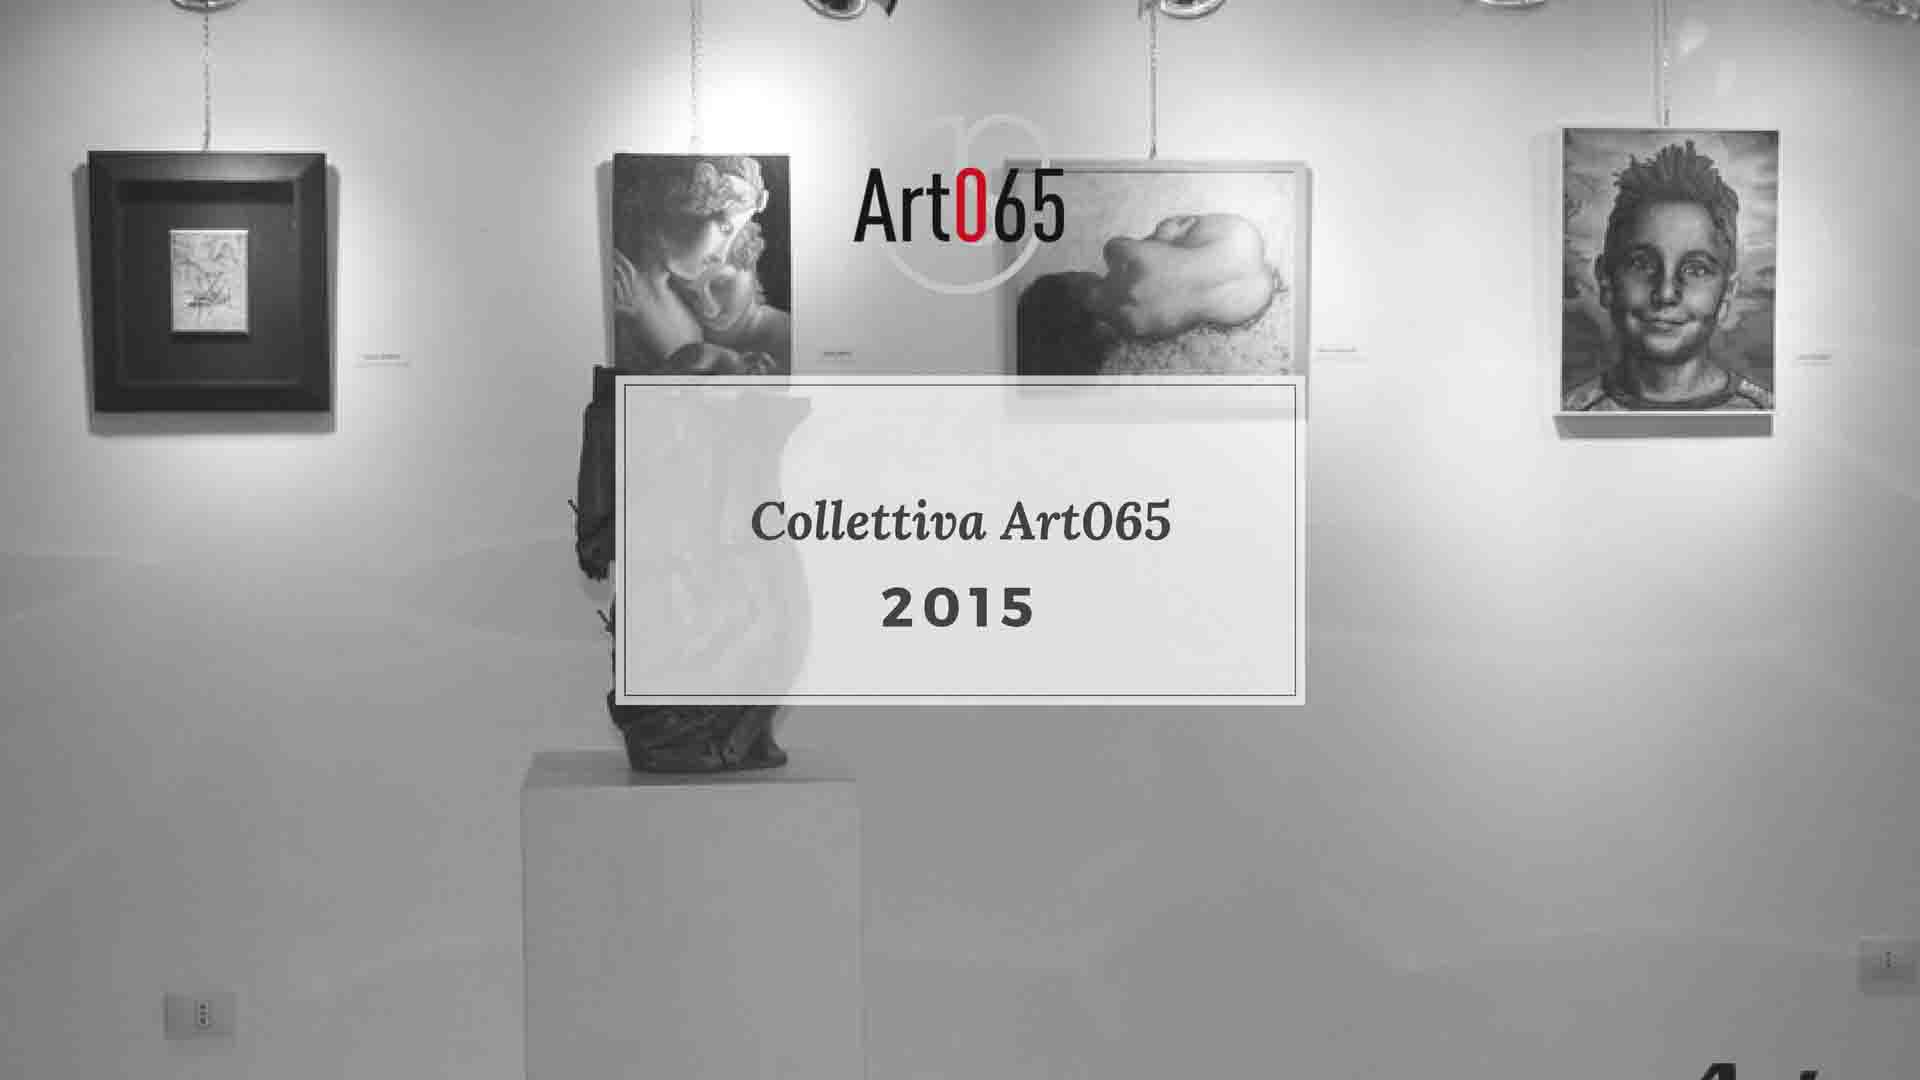 Collettiva Art065 Alexander - 2015 Art065